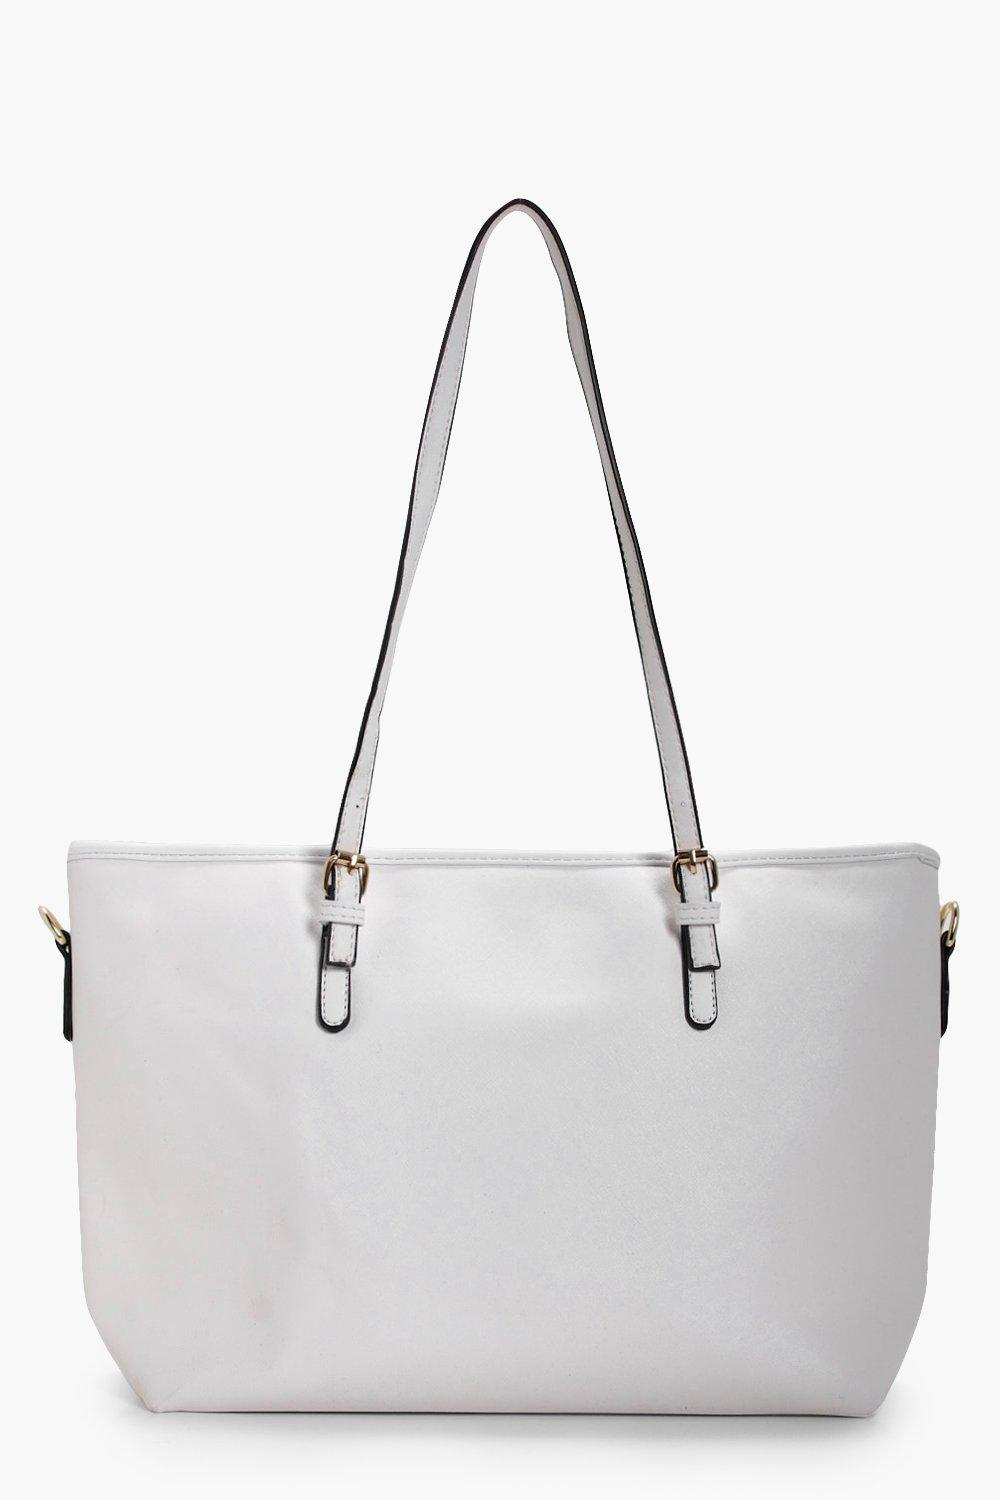 Buckle Detail Shopper Tote - white - Millie Buckle